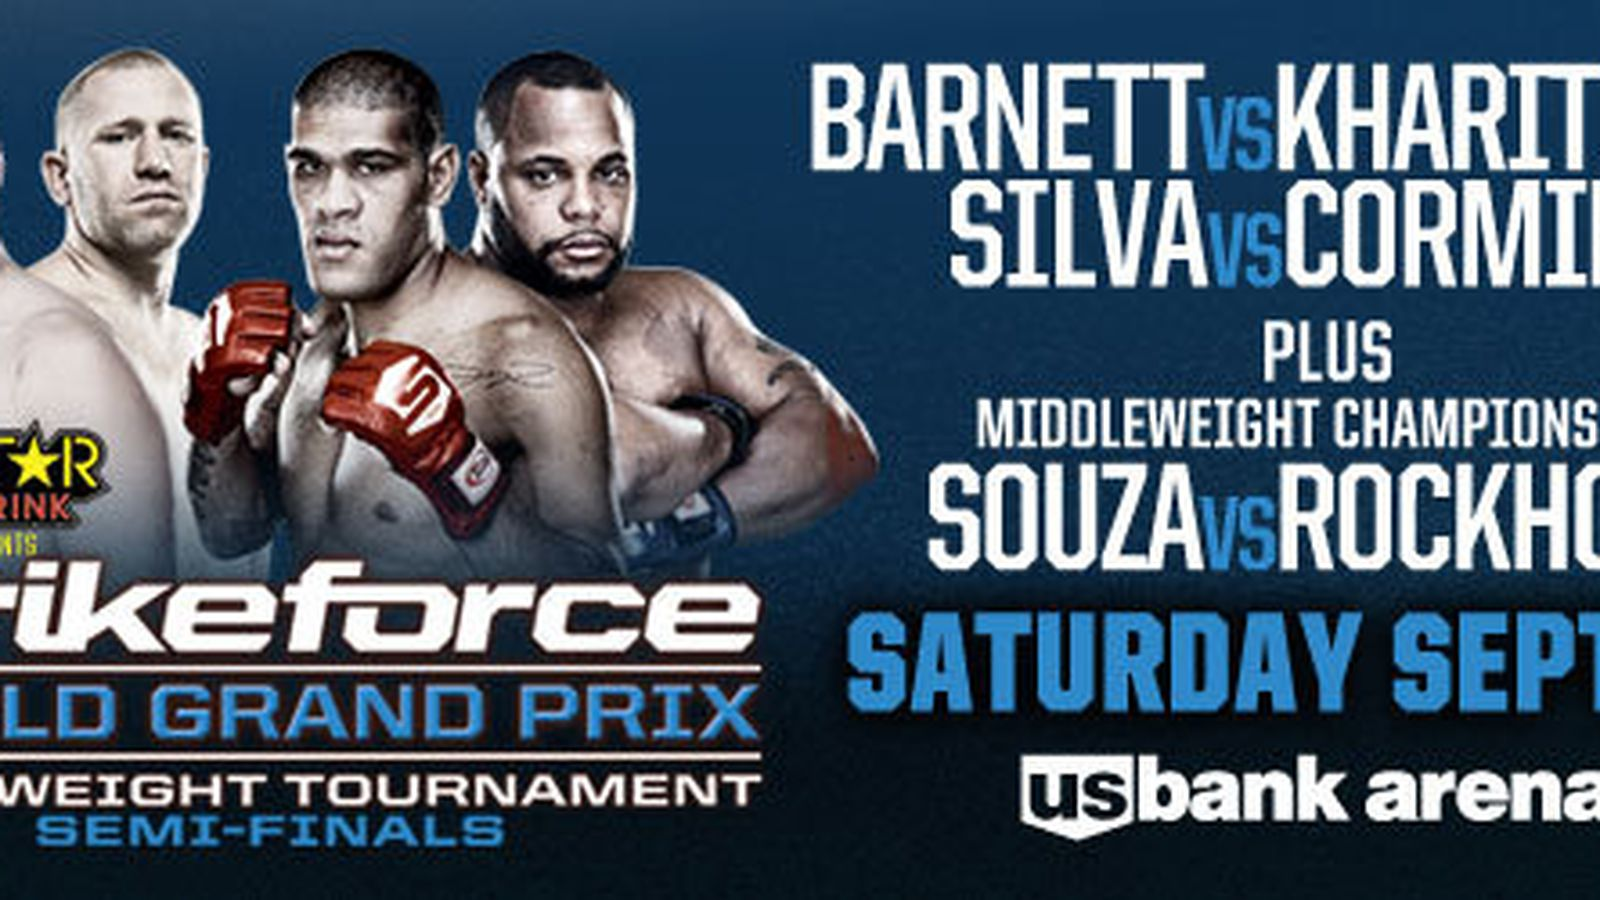 Strikeforce Heavyweight Grand Prix Semifinals fight card ...